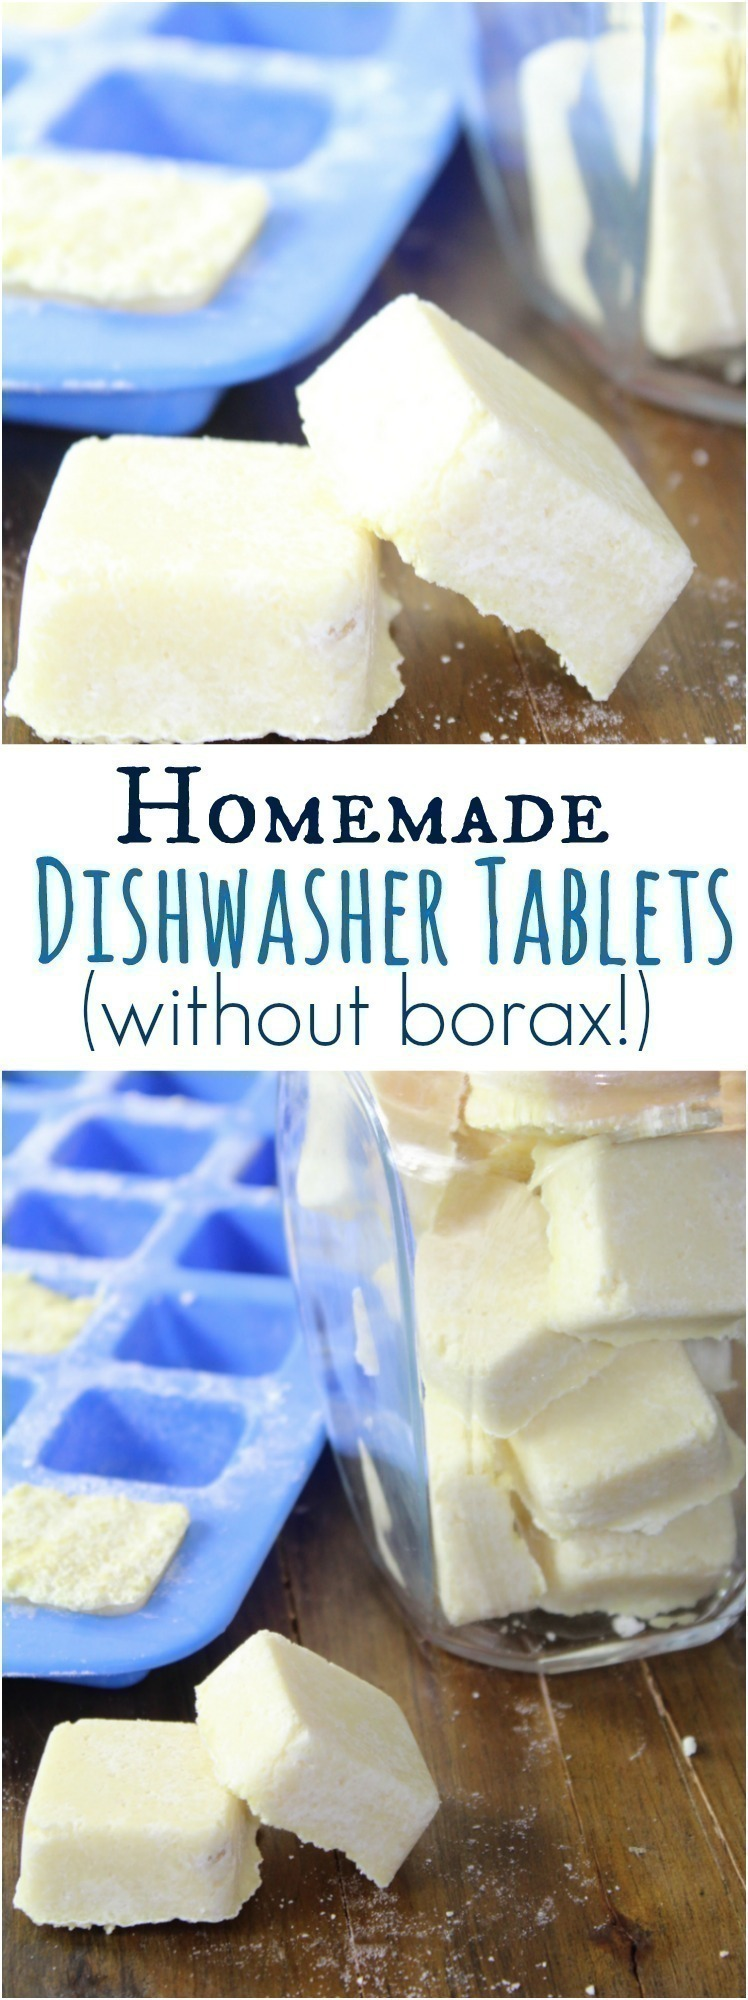 Save money by making your own homemade dishwasher tablets. Here's a simple recipe, without borax, that works amazing!